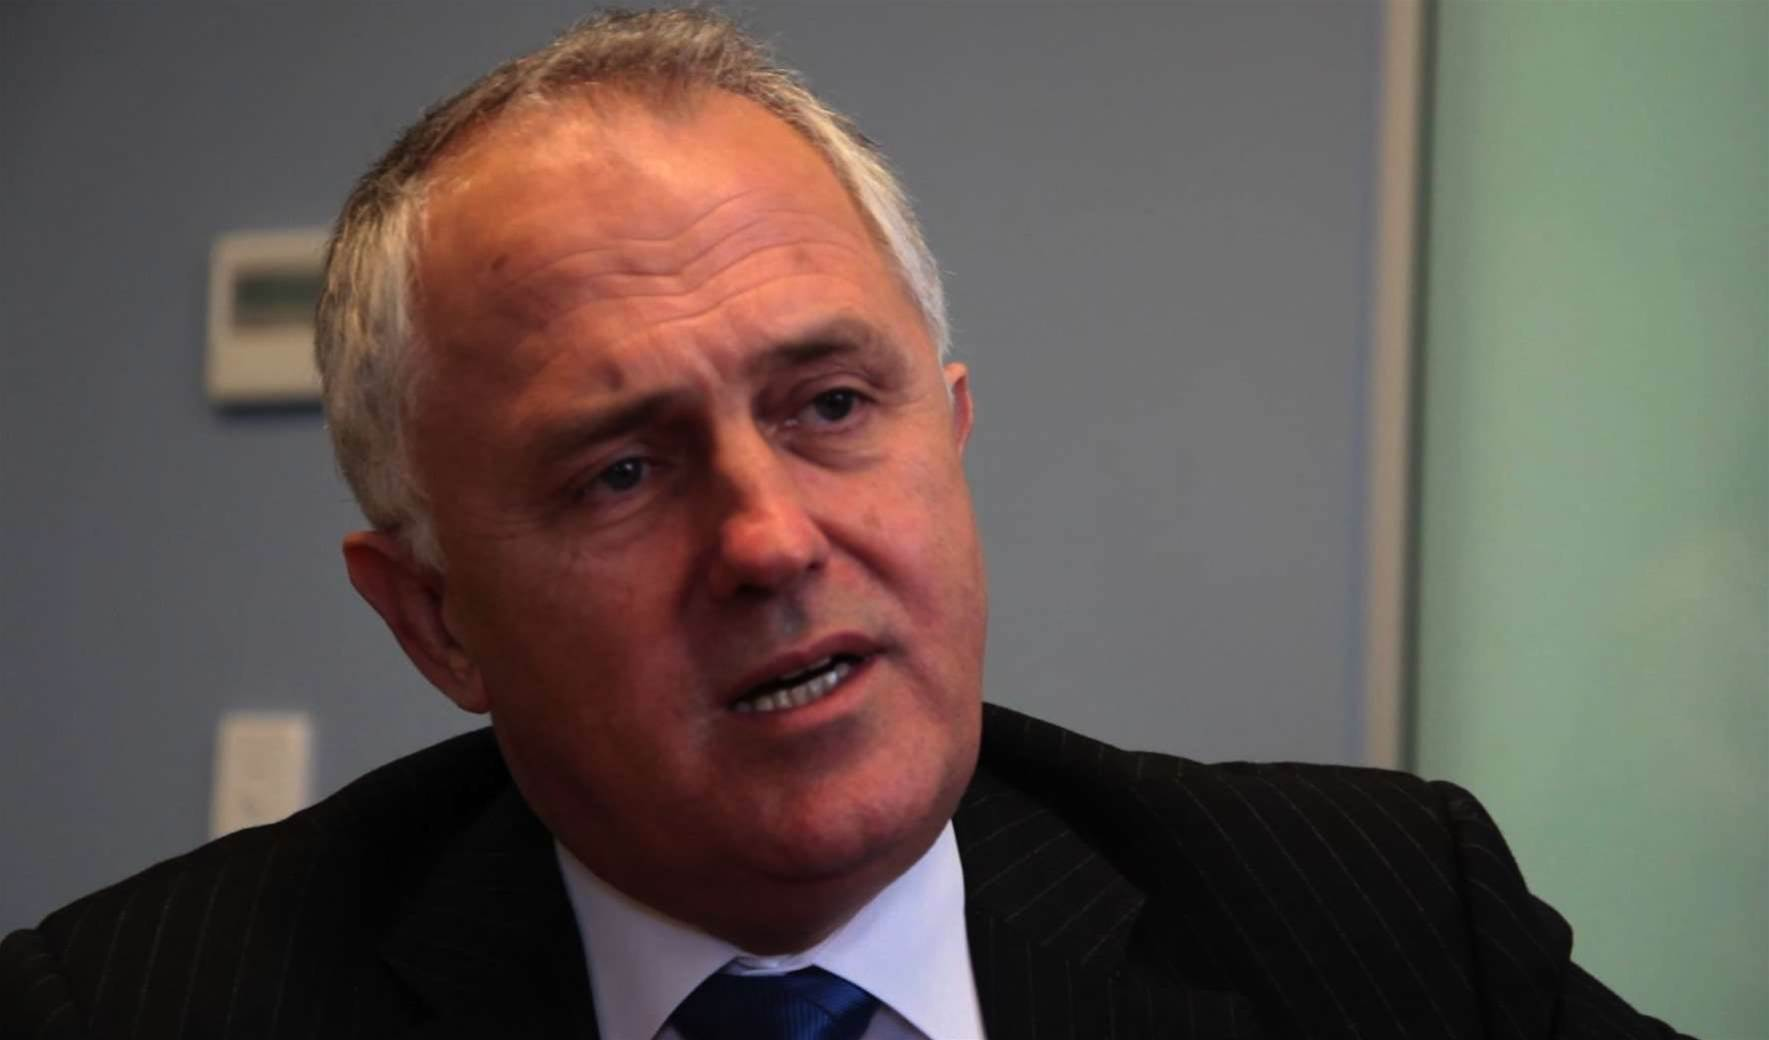 No 'blank cheque' for NBN, Turnbull tells Lateline